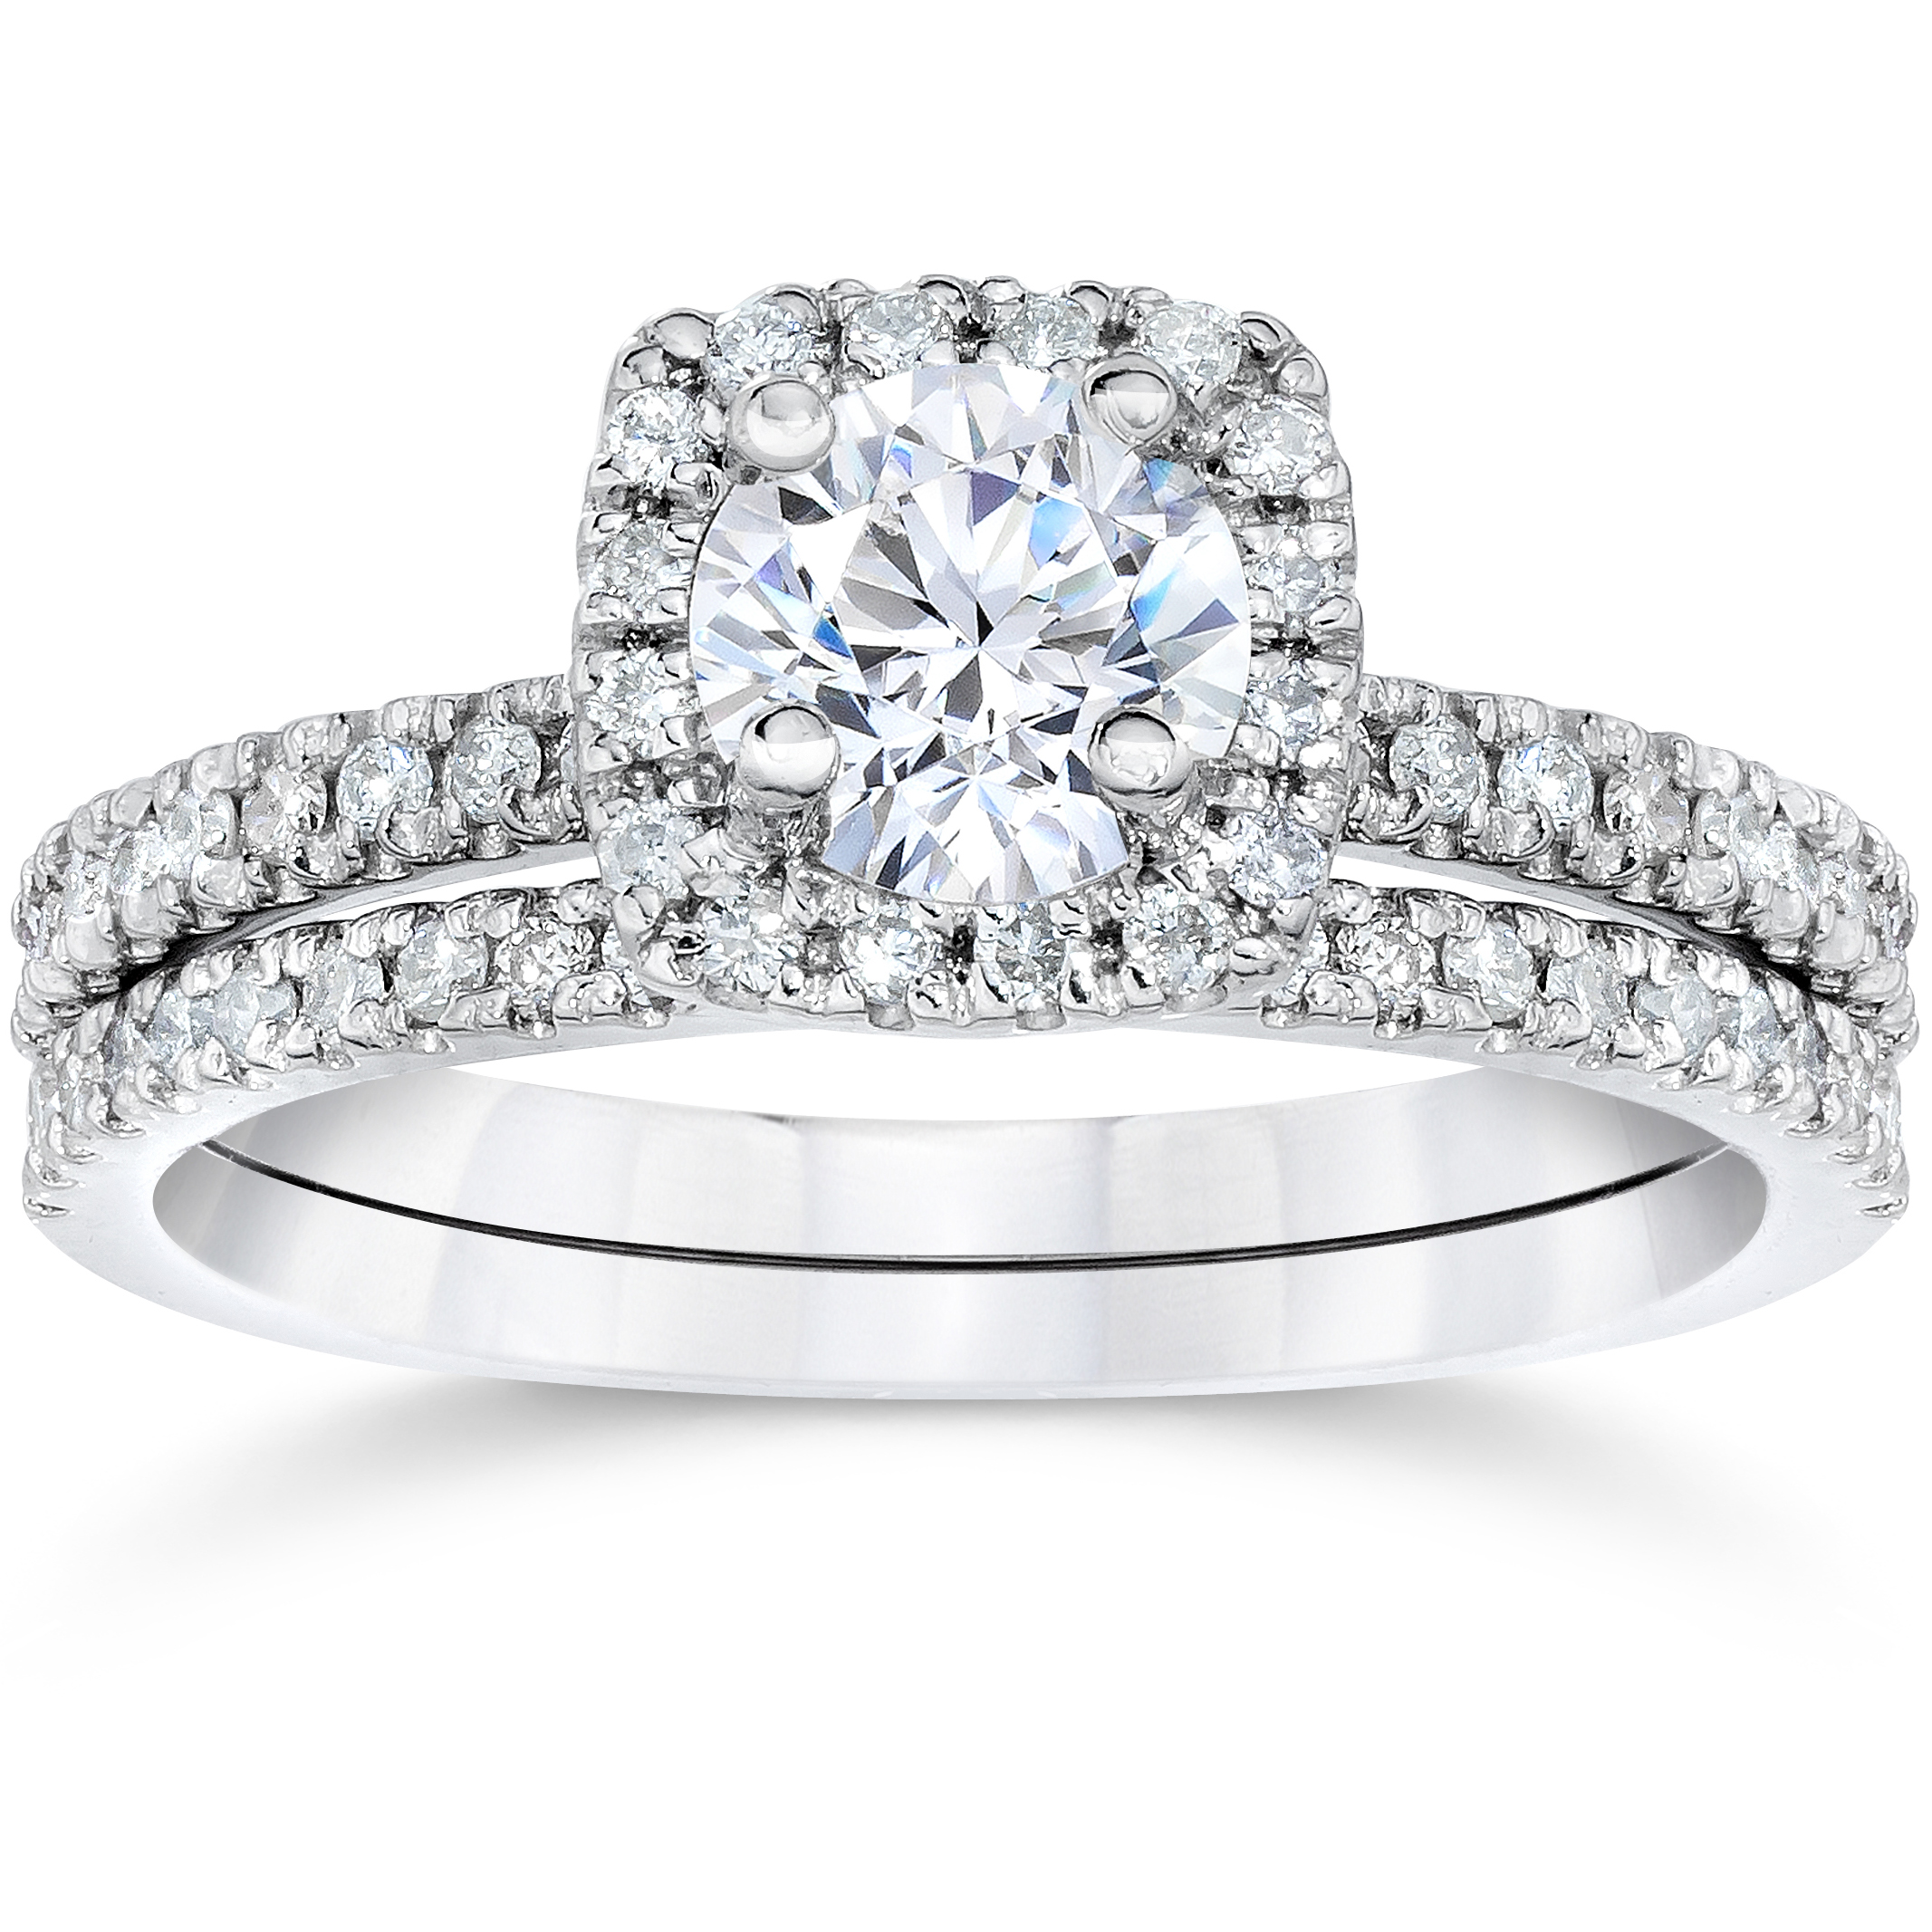 Beau 5/8Ct Cushion Halo Real Diamond Engagement Wedding Ring Set White Gold